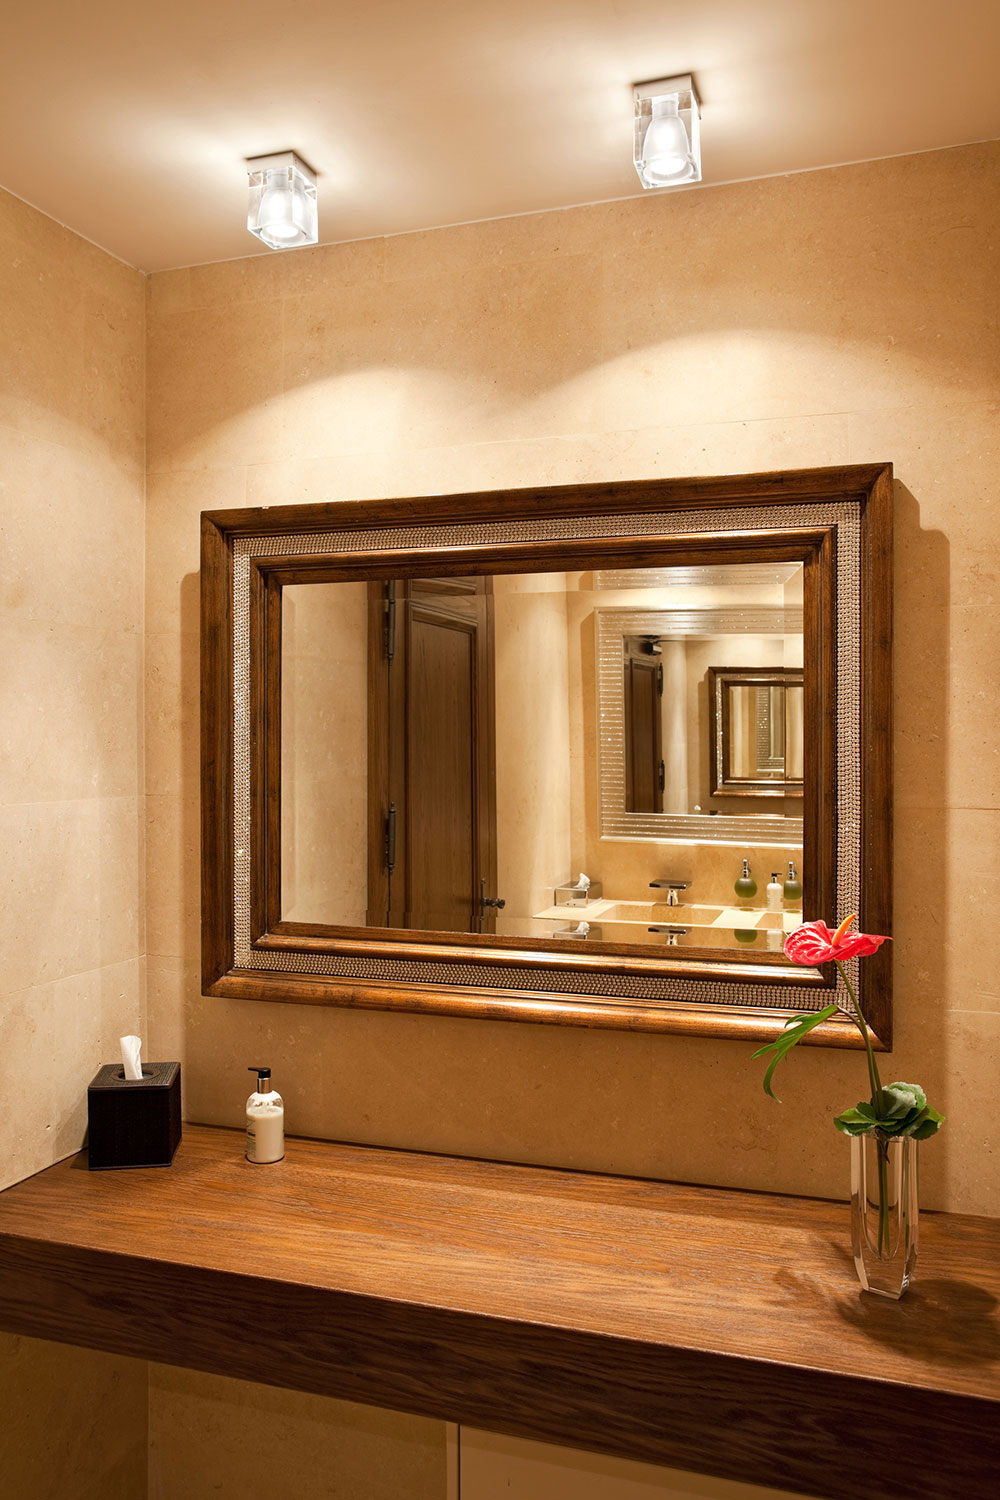 Installation Gallery Bathroom Lighting Ceiling Wiring A Light Cubetto Fixture By Fabbian